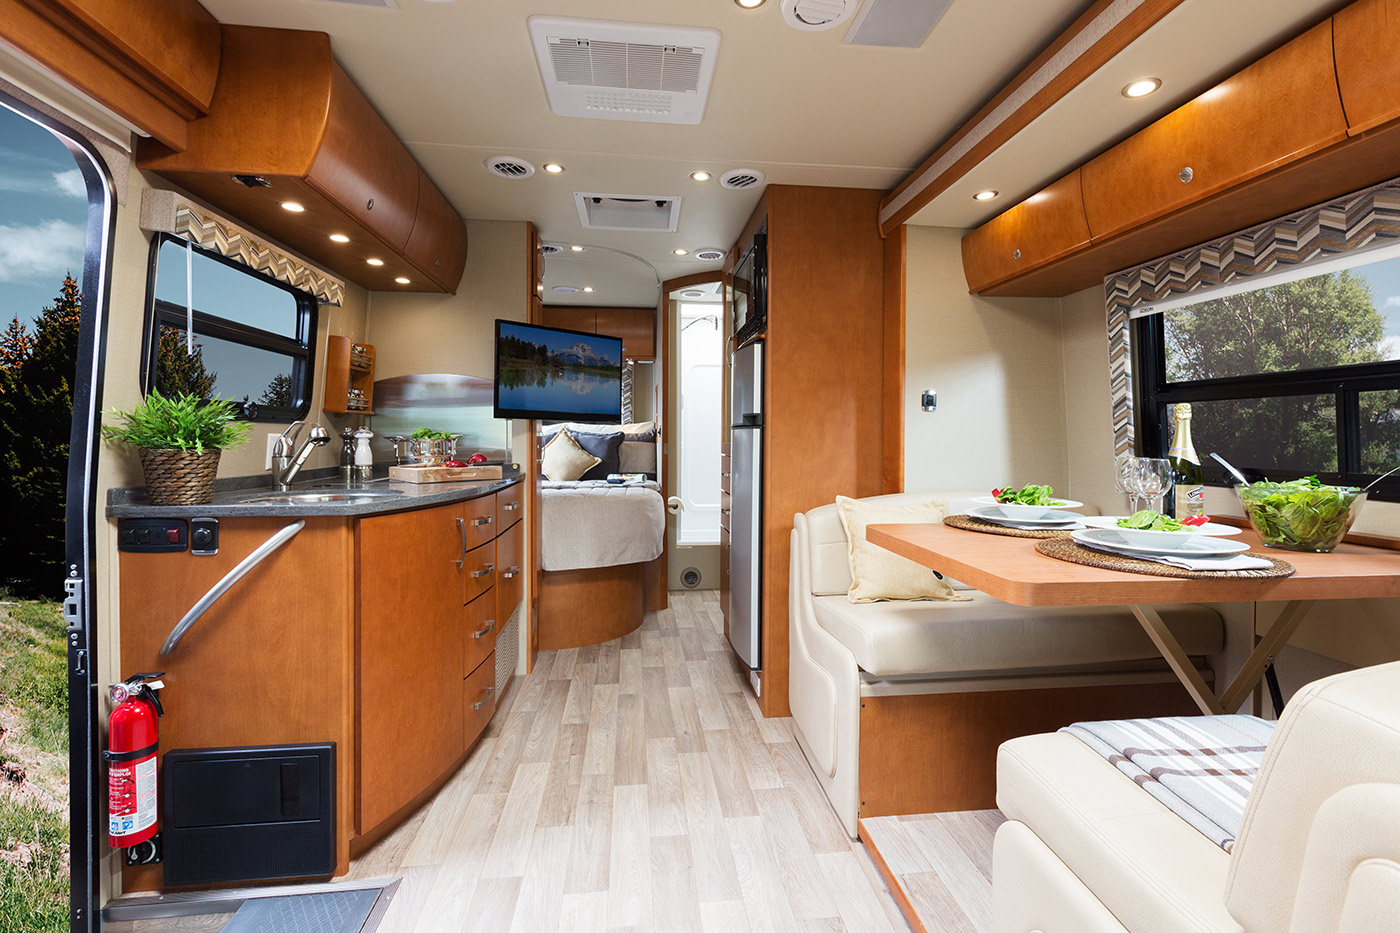 2015 Unity U24MB shown in Chestnut Cherry cabinets & Illusions Décor.